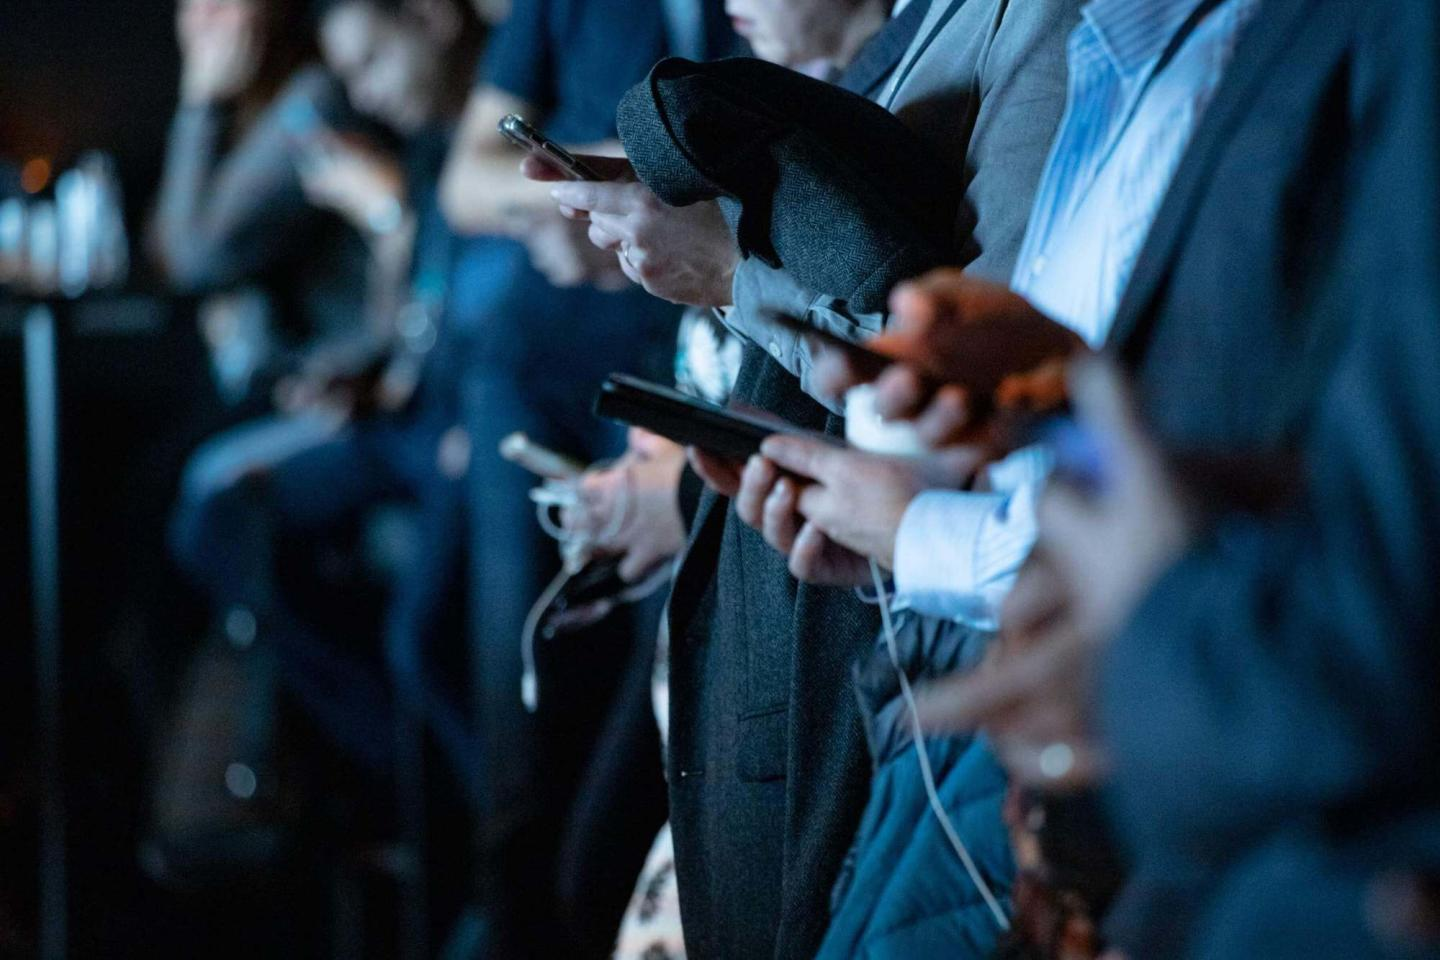 An image of many people on their phones, cropped at the neck and legs.